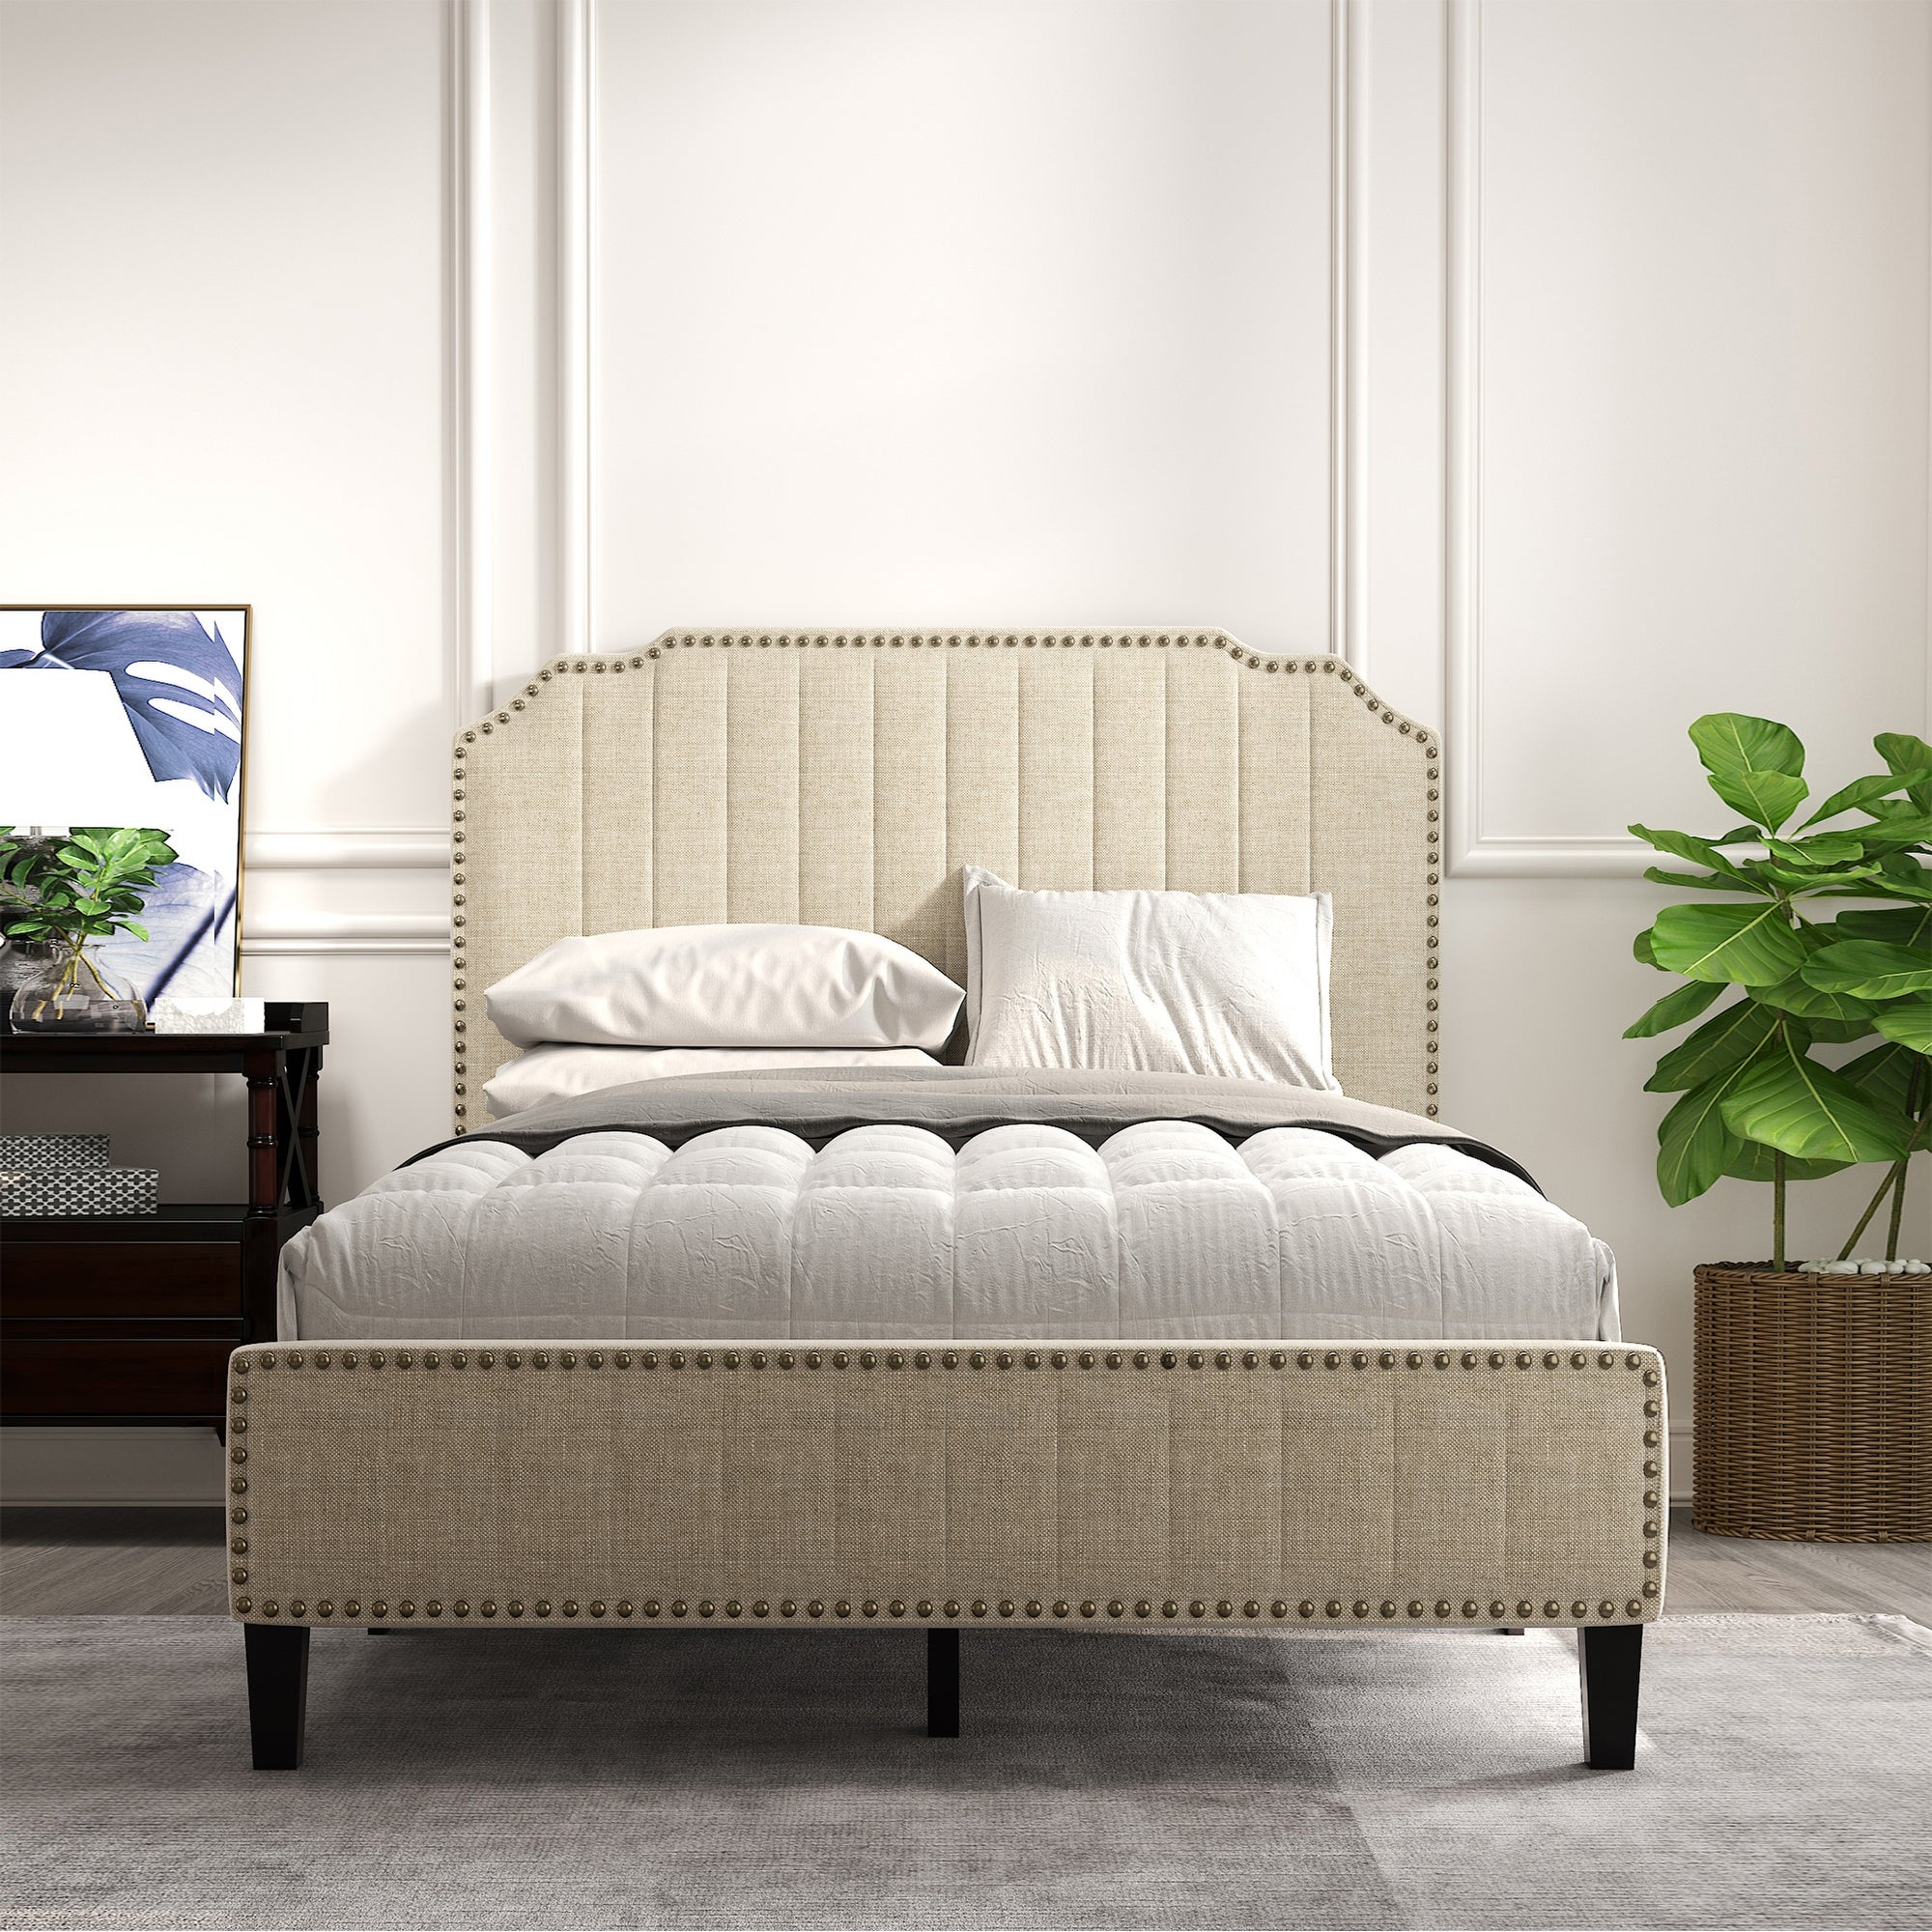 Modern Linen Curved Upholstered Platform Bed With Nailhead Trim Full Overstock 32649435